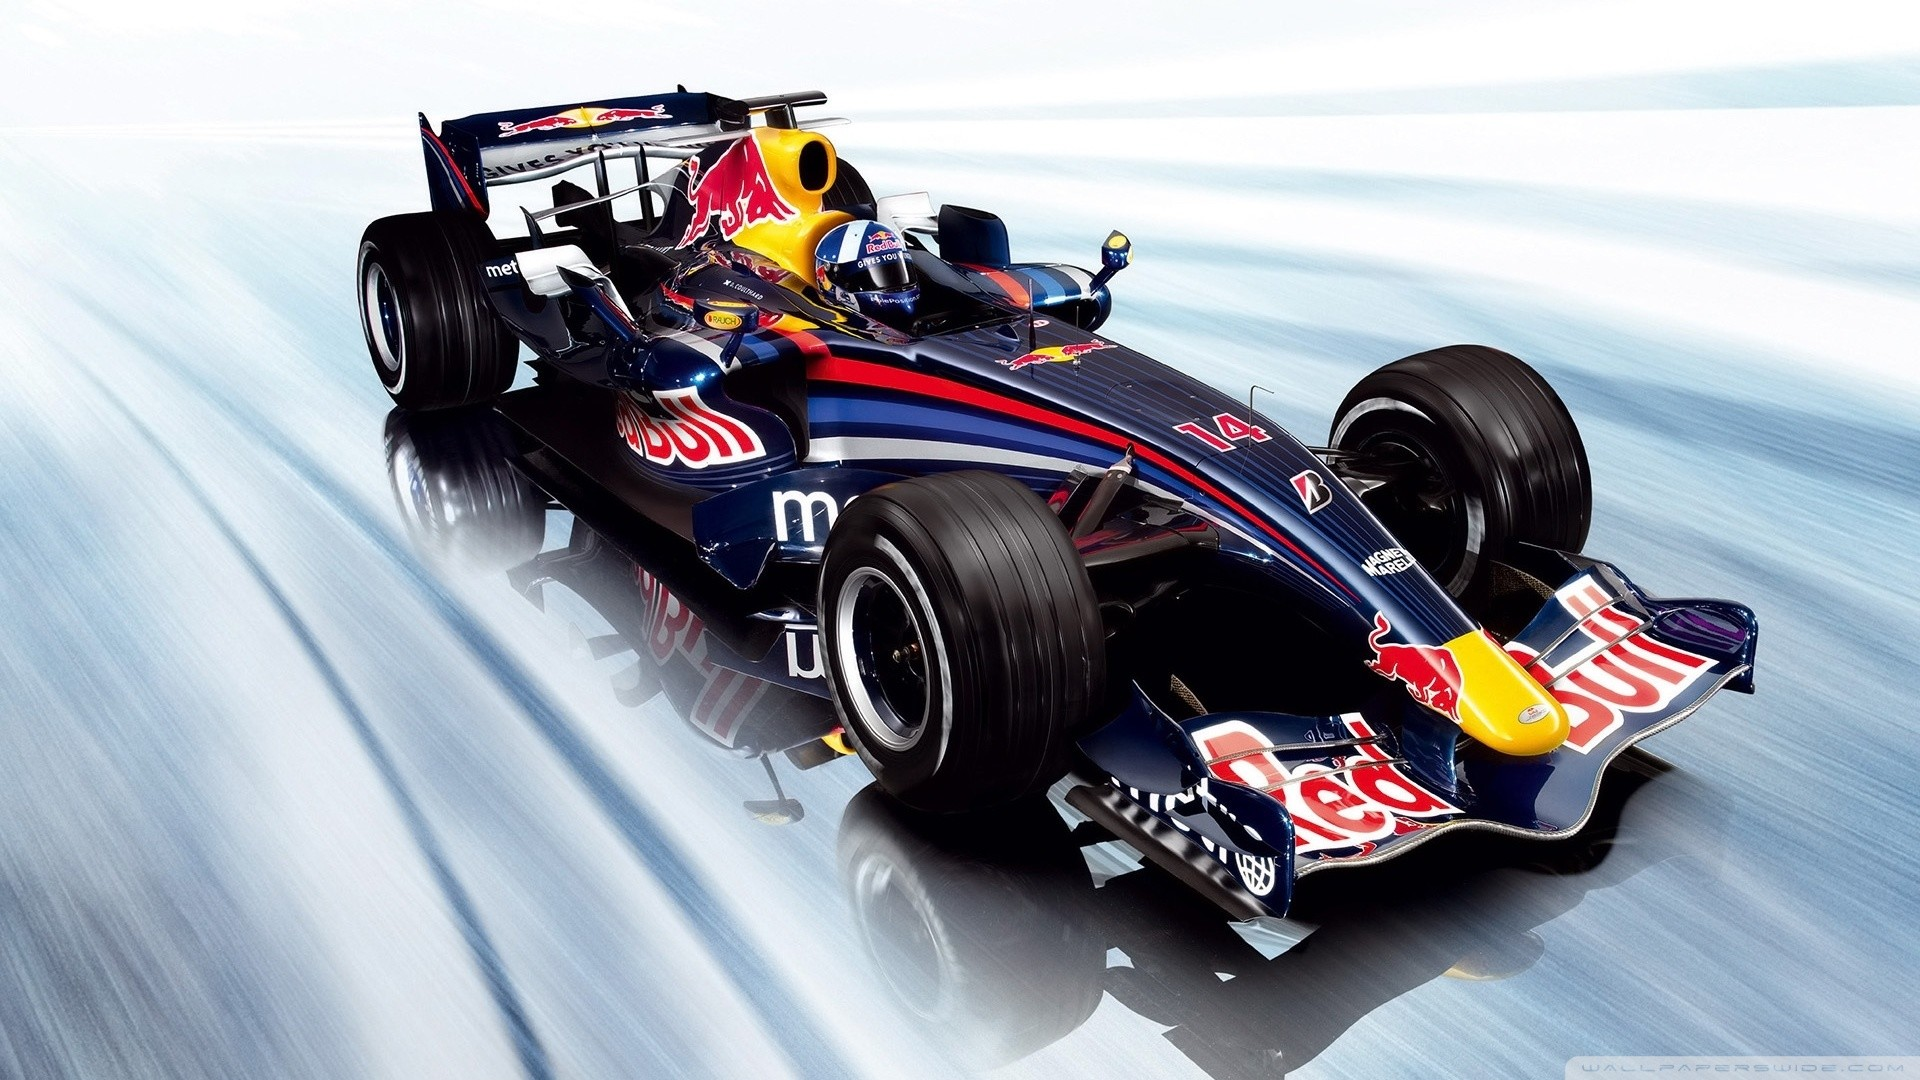 1920x1080 Red Bull Racing HD desktop wallpaper : High Definition